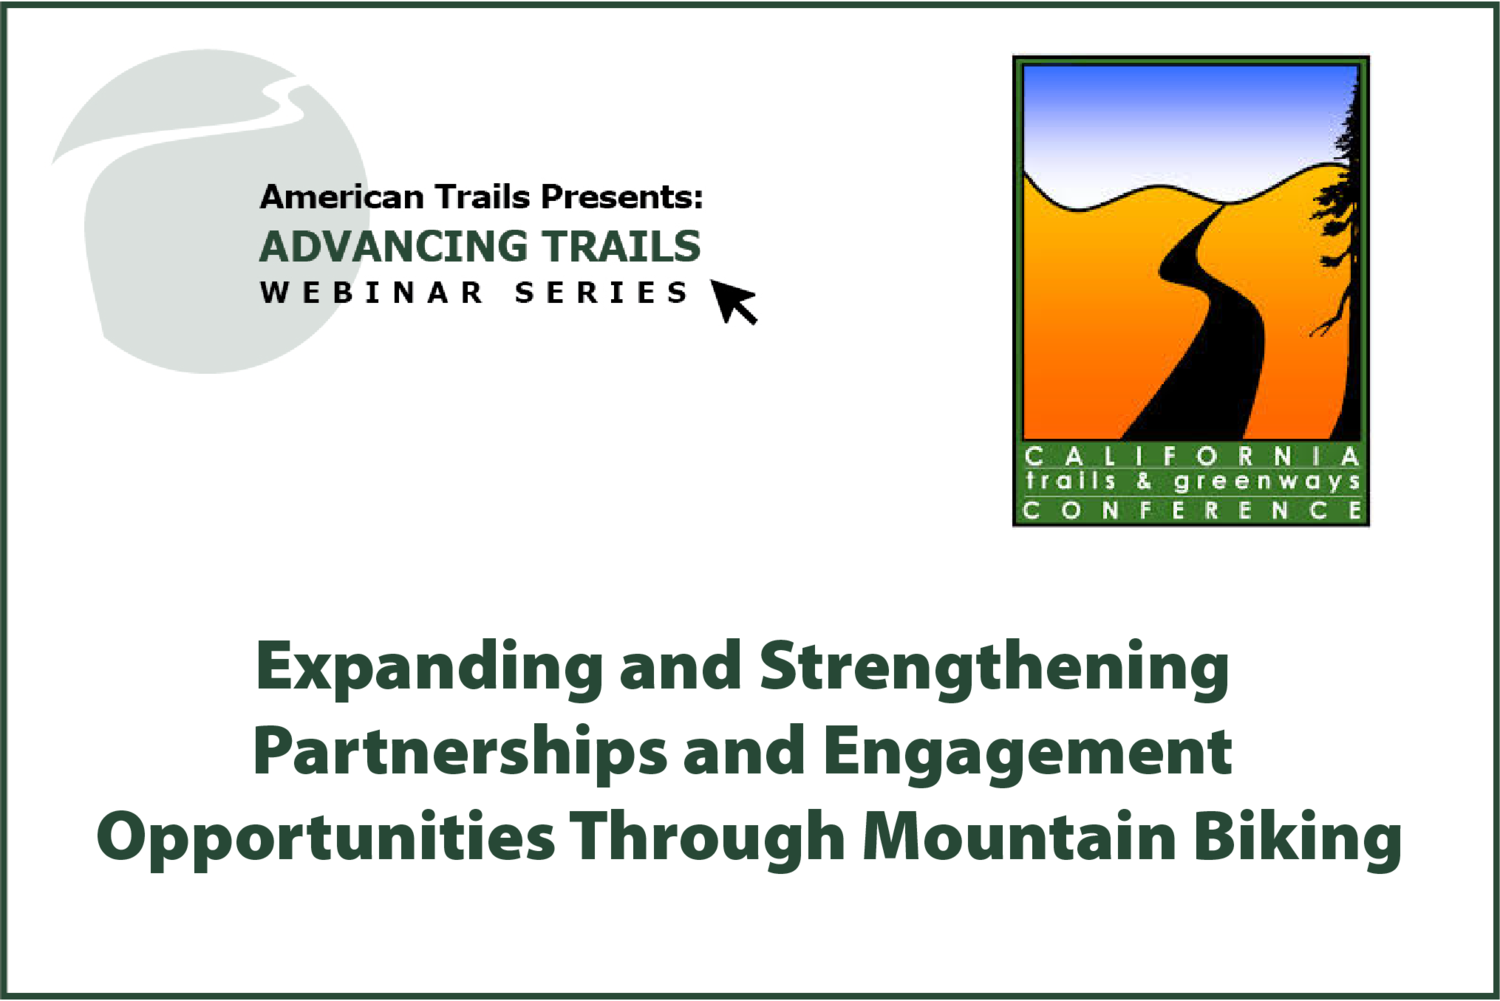 Expanding and Strengthening Partnerships and Engagement Opportunities Through Mountain Biking (RECORDING)